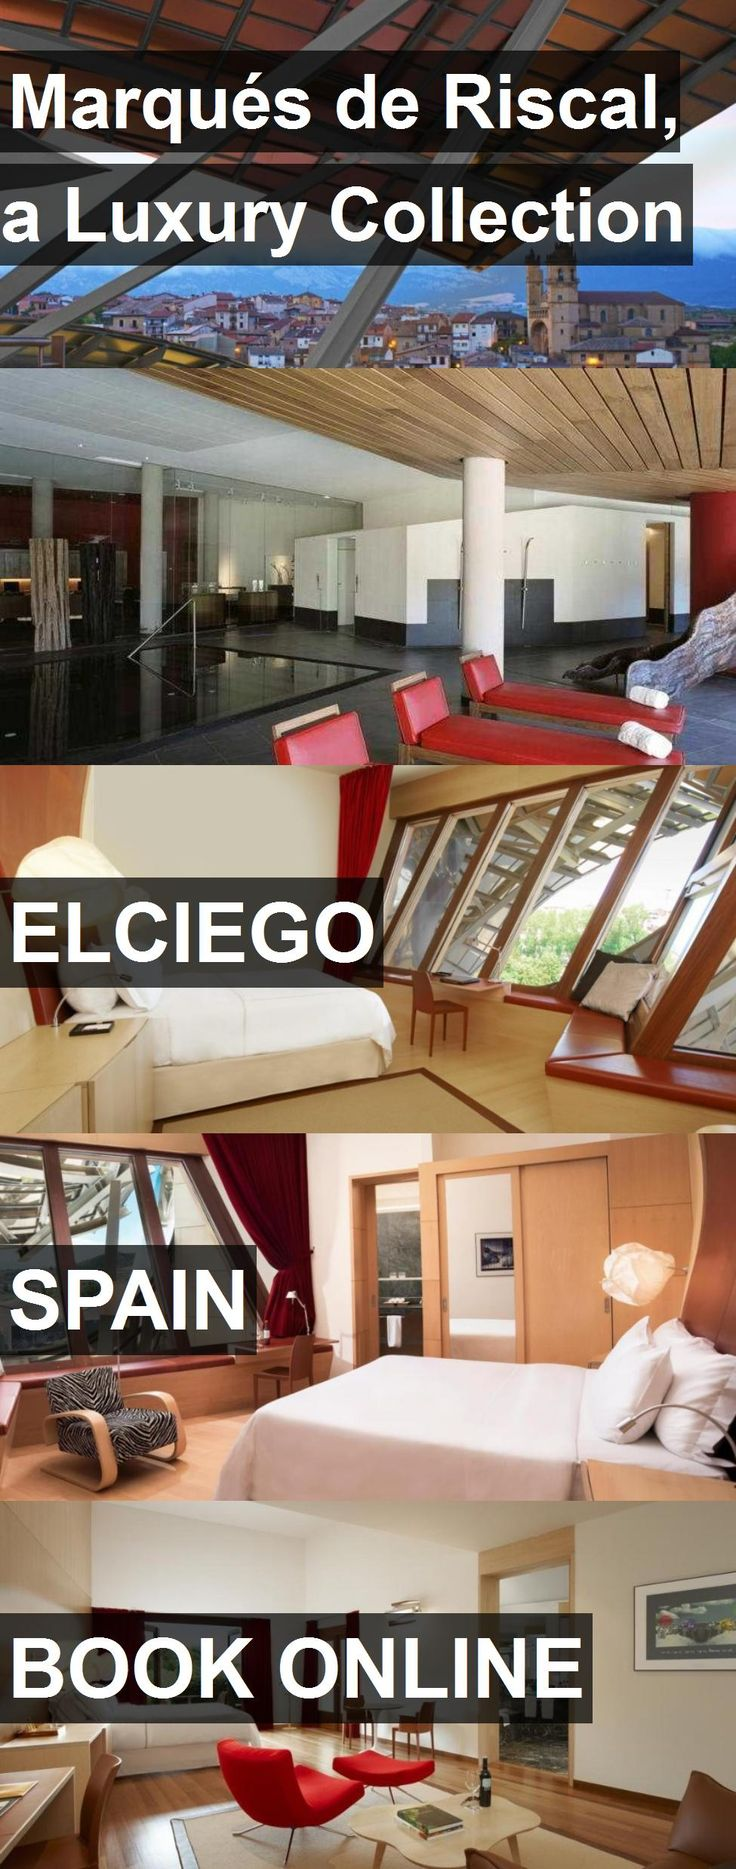 Hotel Marqués de Riscal, a Luxury Collection in Elciego, Spain. For more information, photos, reviews and best prices please follow the link. #Spain #Elciego #travel #vacation #hotel